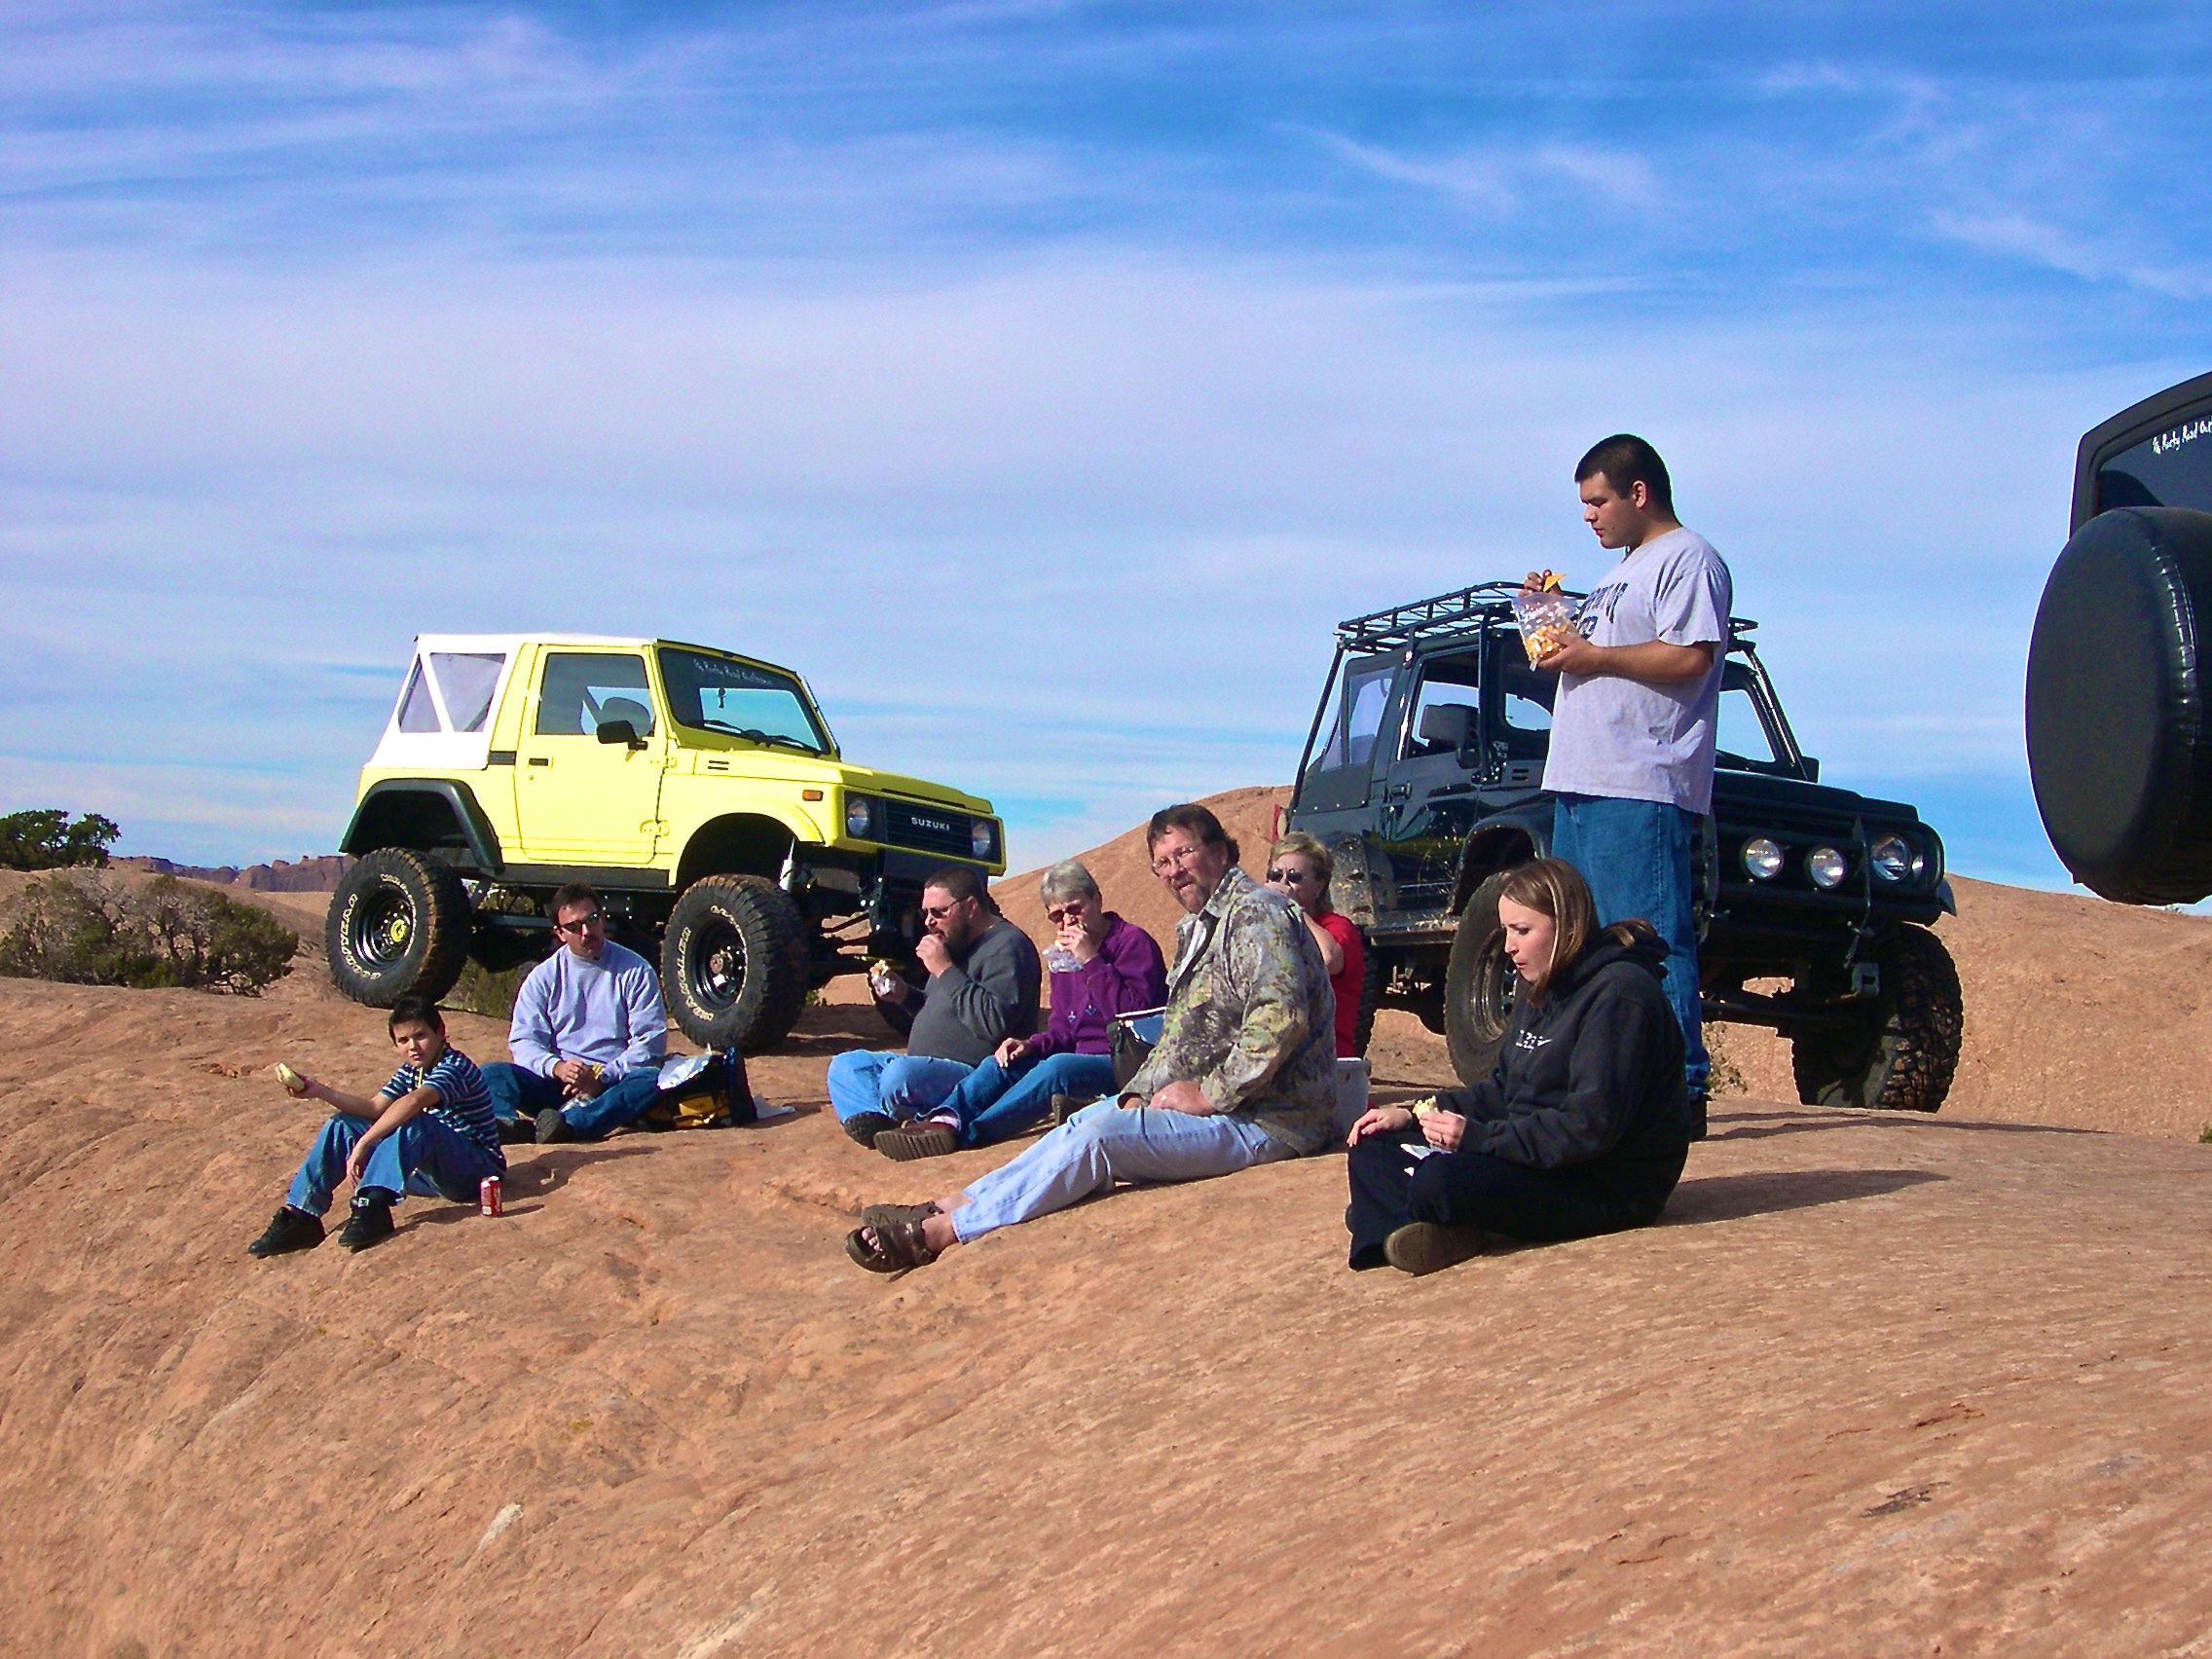 Conk Family and Friends on Lunch Break in Moab, Utah, USA